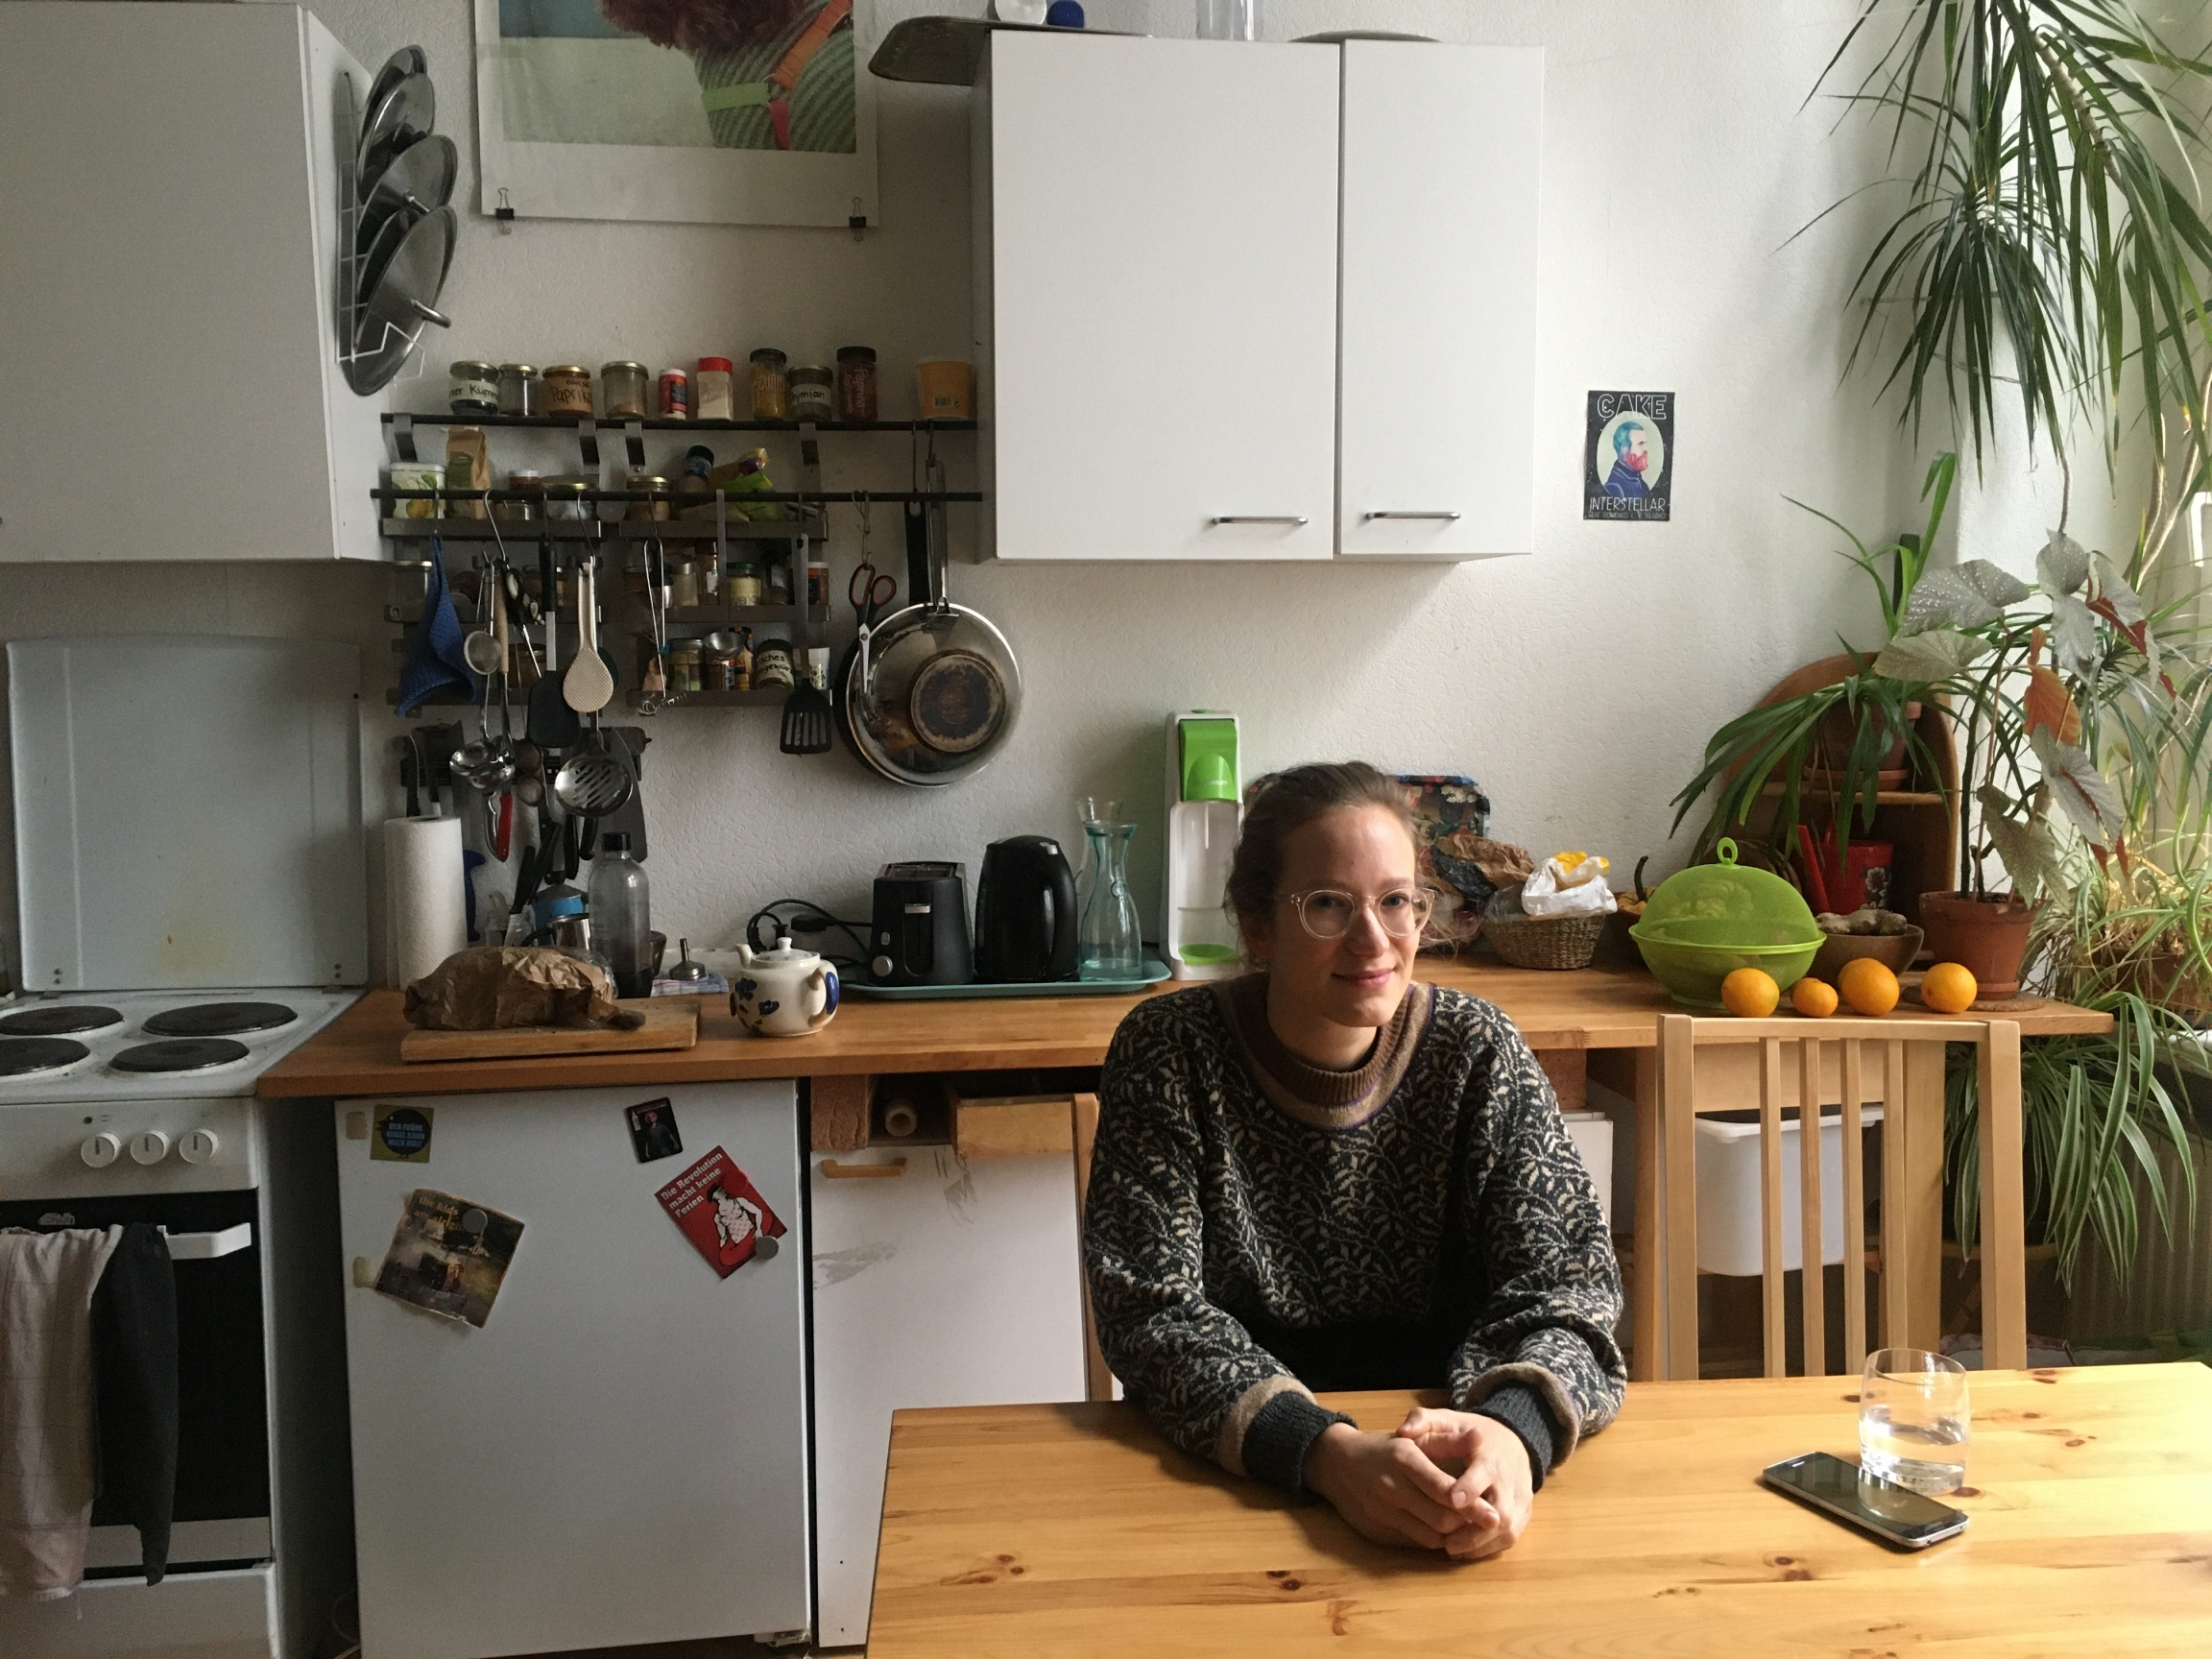 Jenny Stupka, a tenant in Berlin, says that after a recent ruling byGermany's constitutional court that lifts a rent cap in the city, more than half her income will go to her rent.